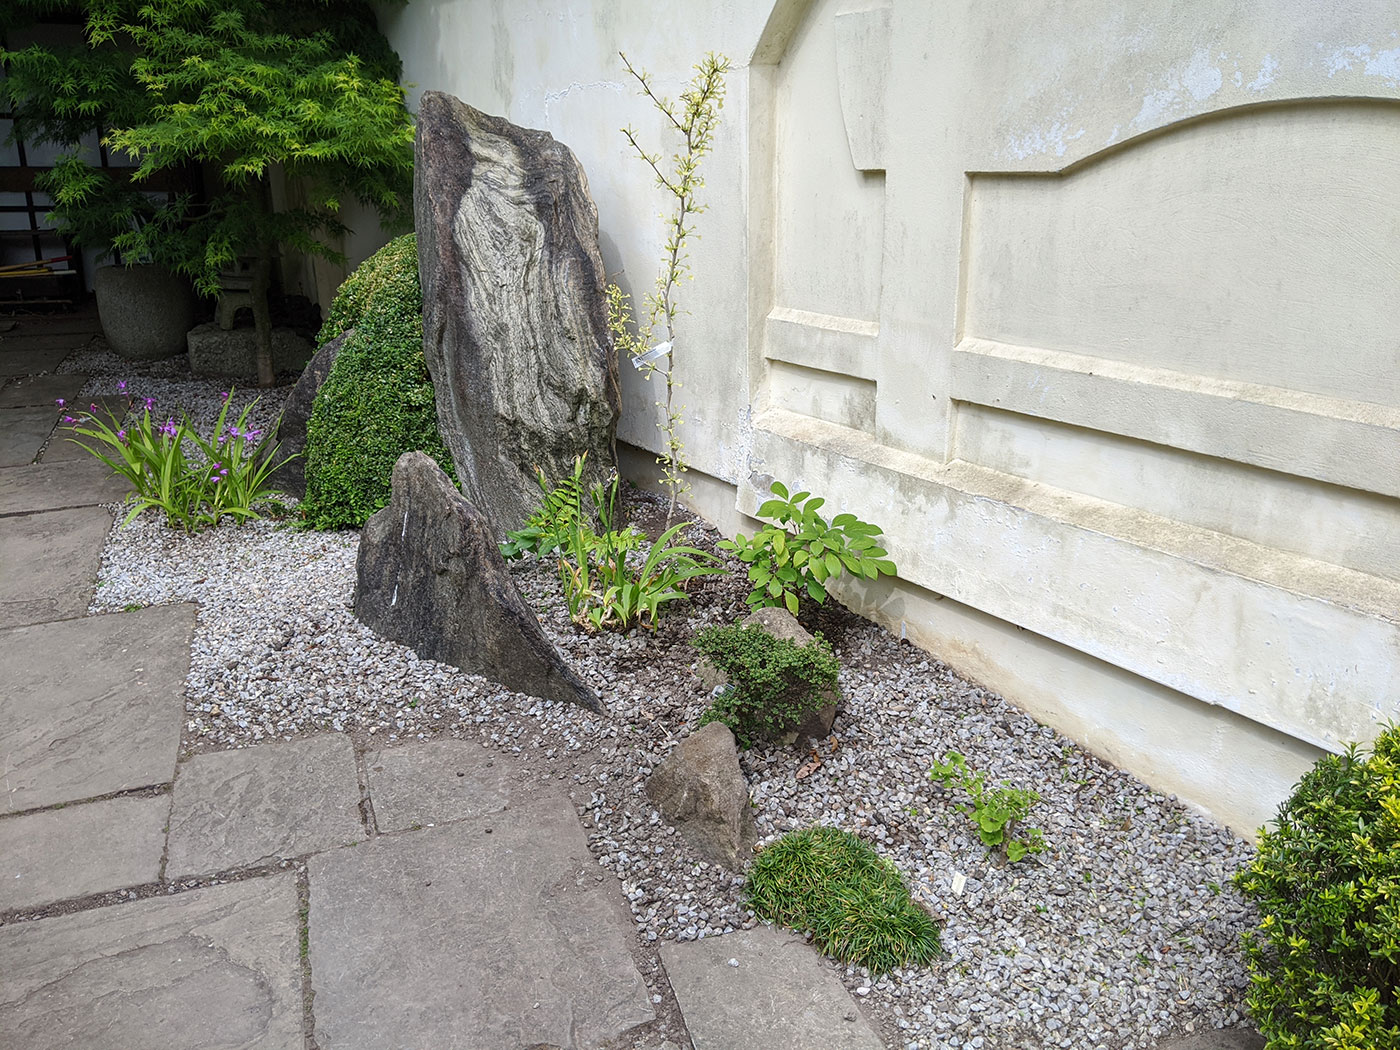 A new gravel bed with some specimen dwarf shrubs and perennials